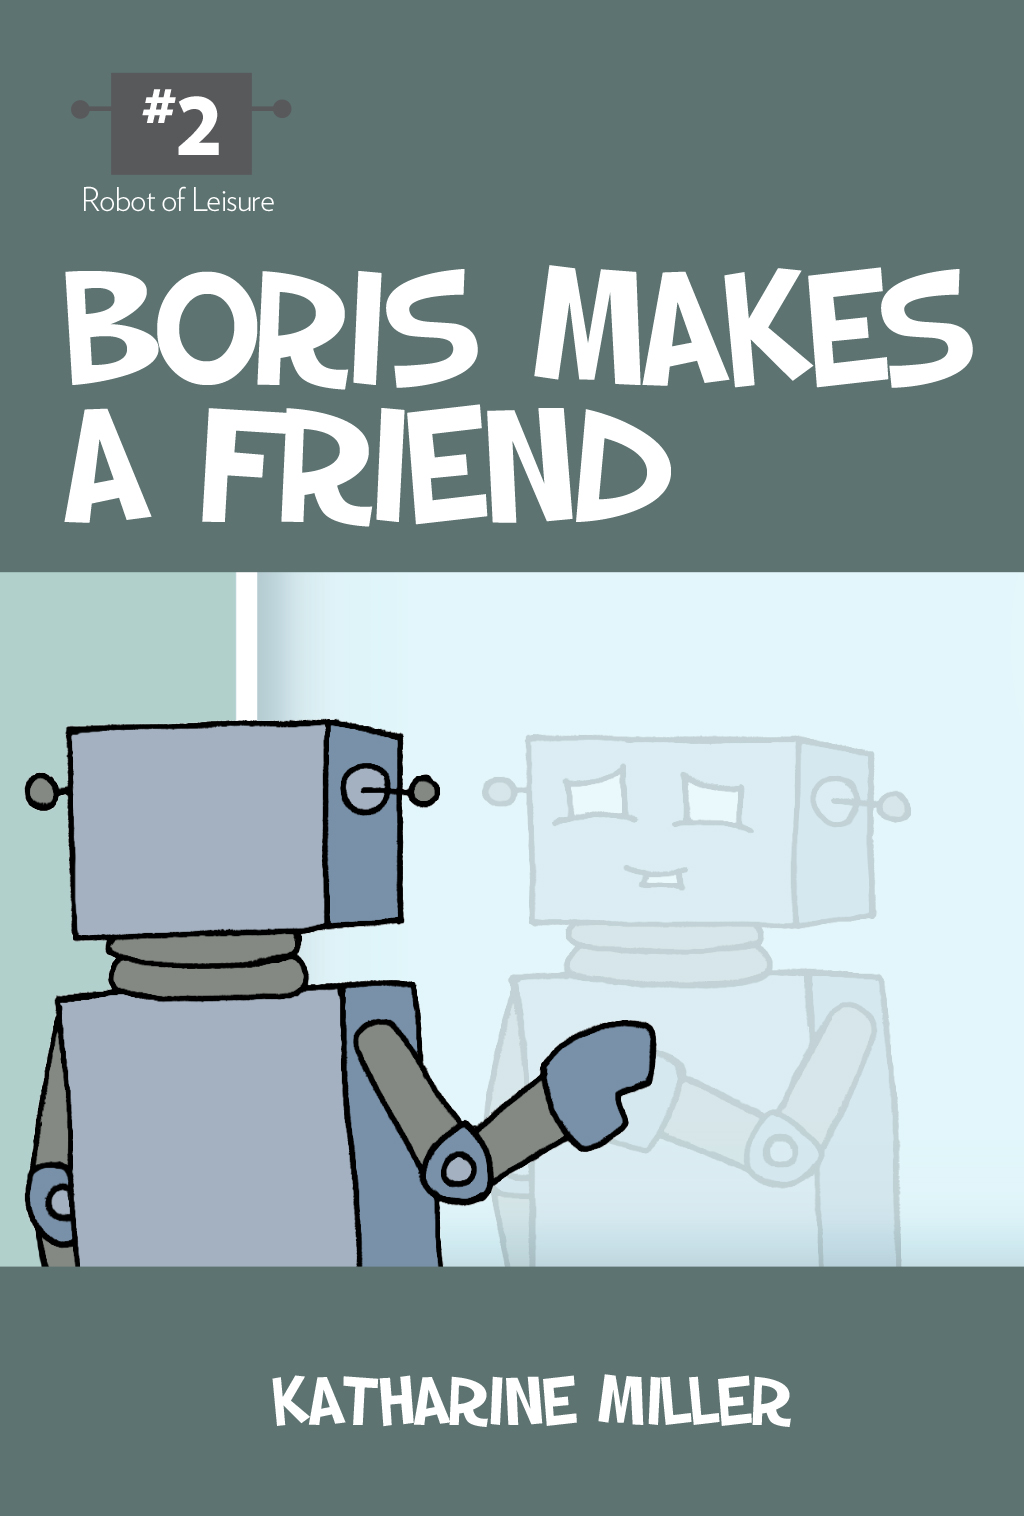 Boris Makes a Friend